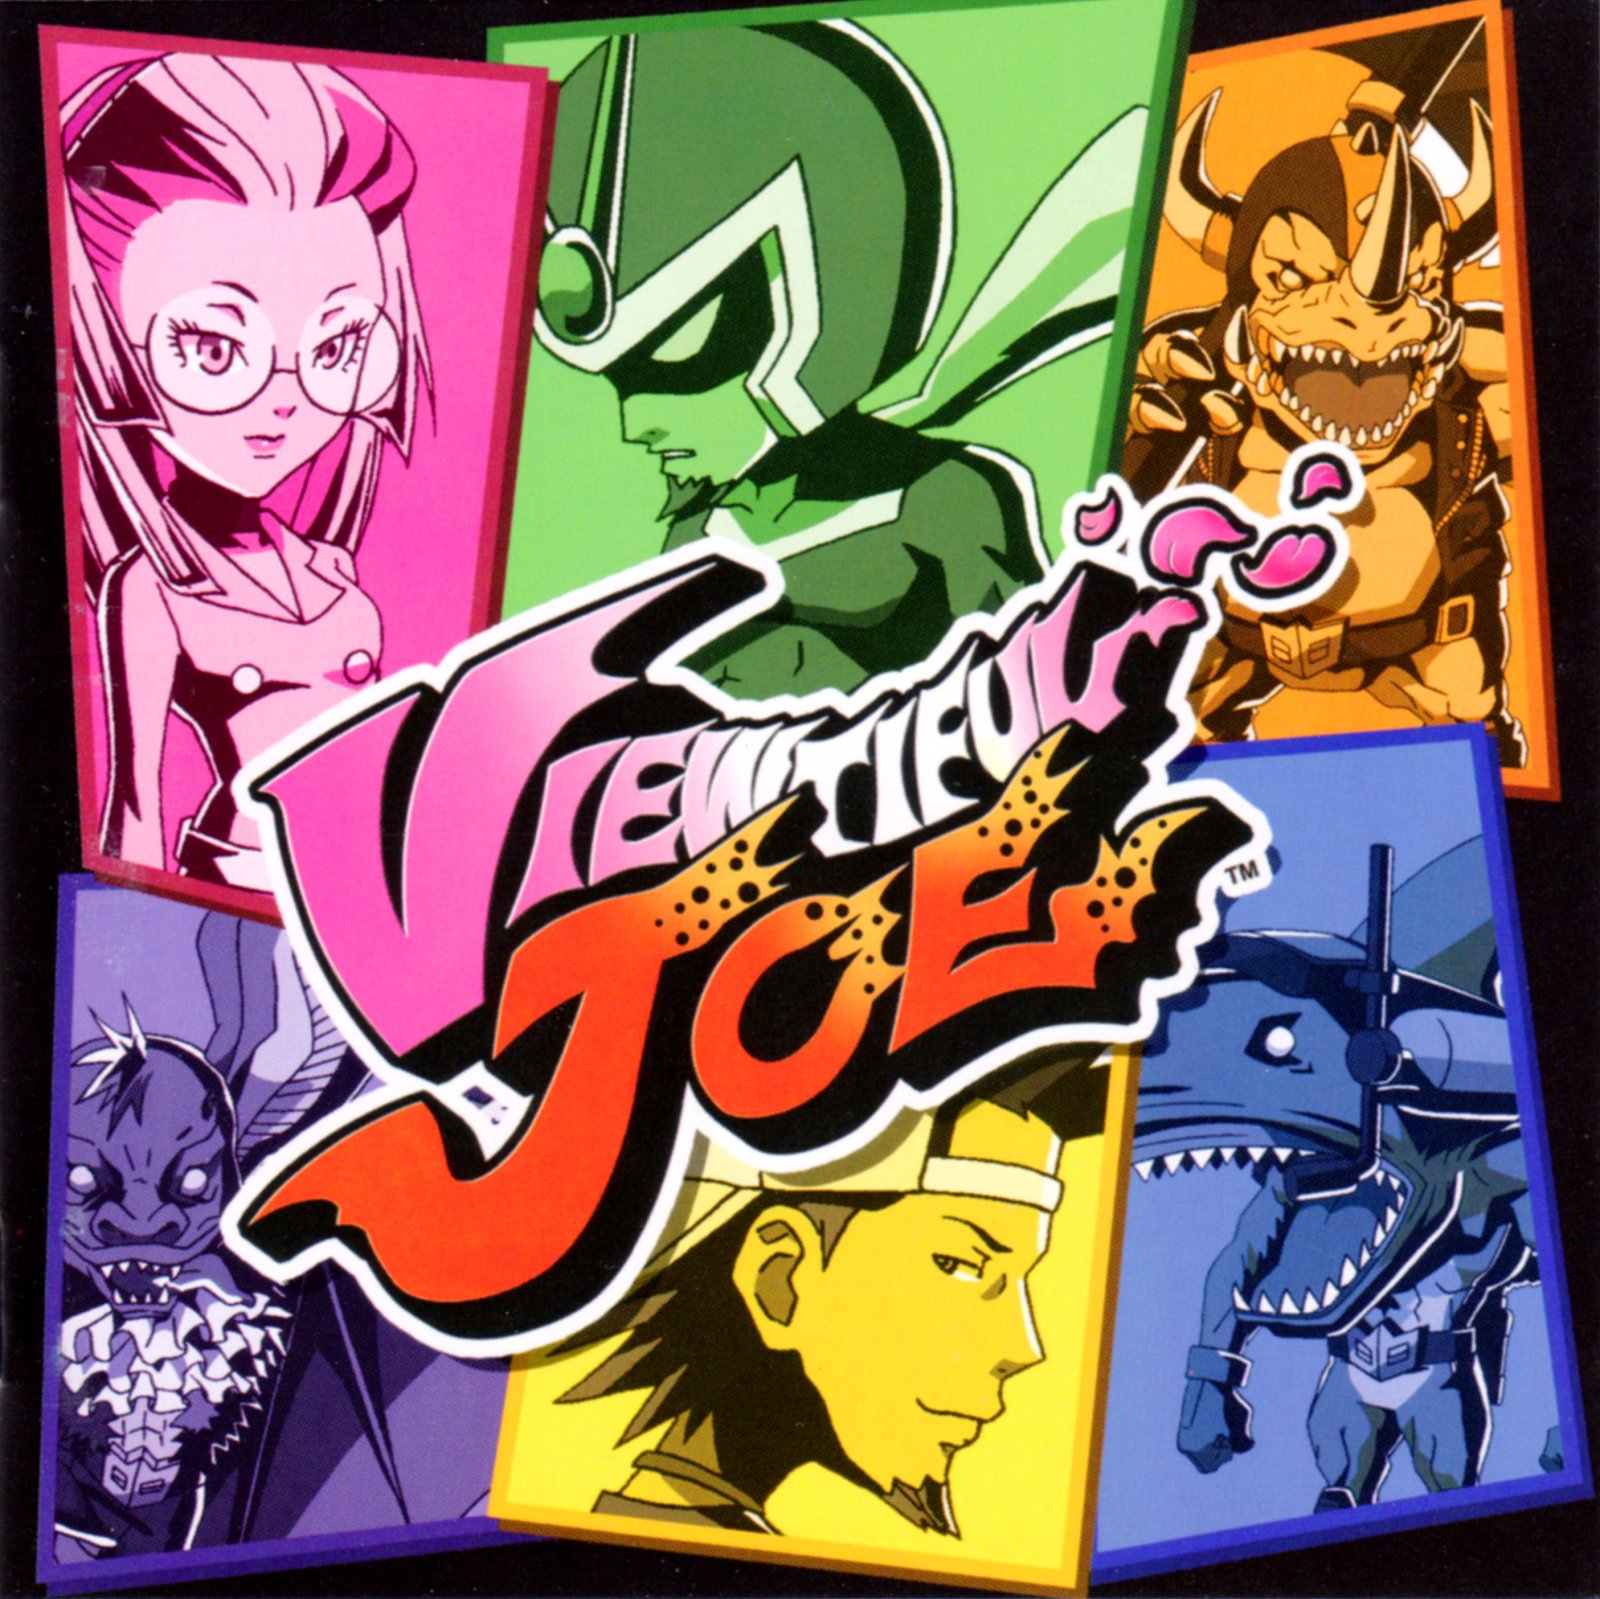 Viewtiful joe hentai yaoi join told